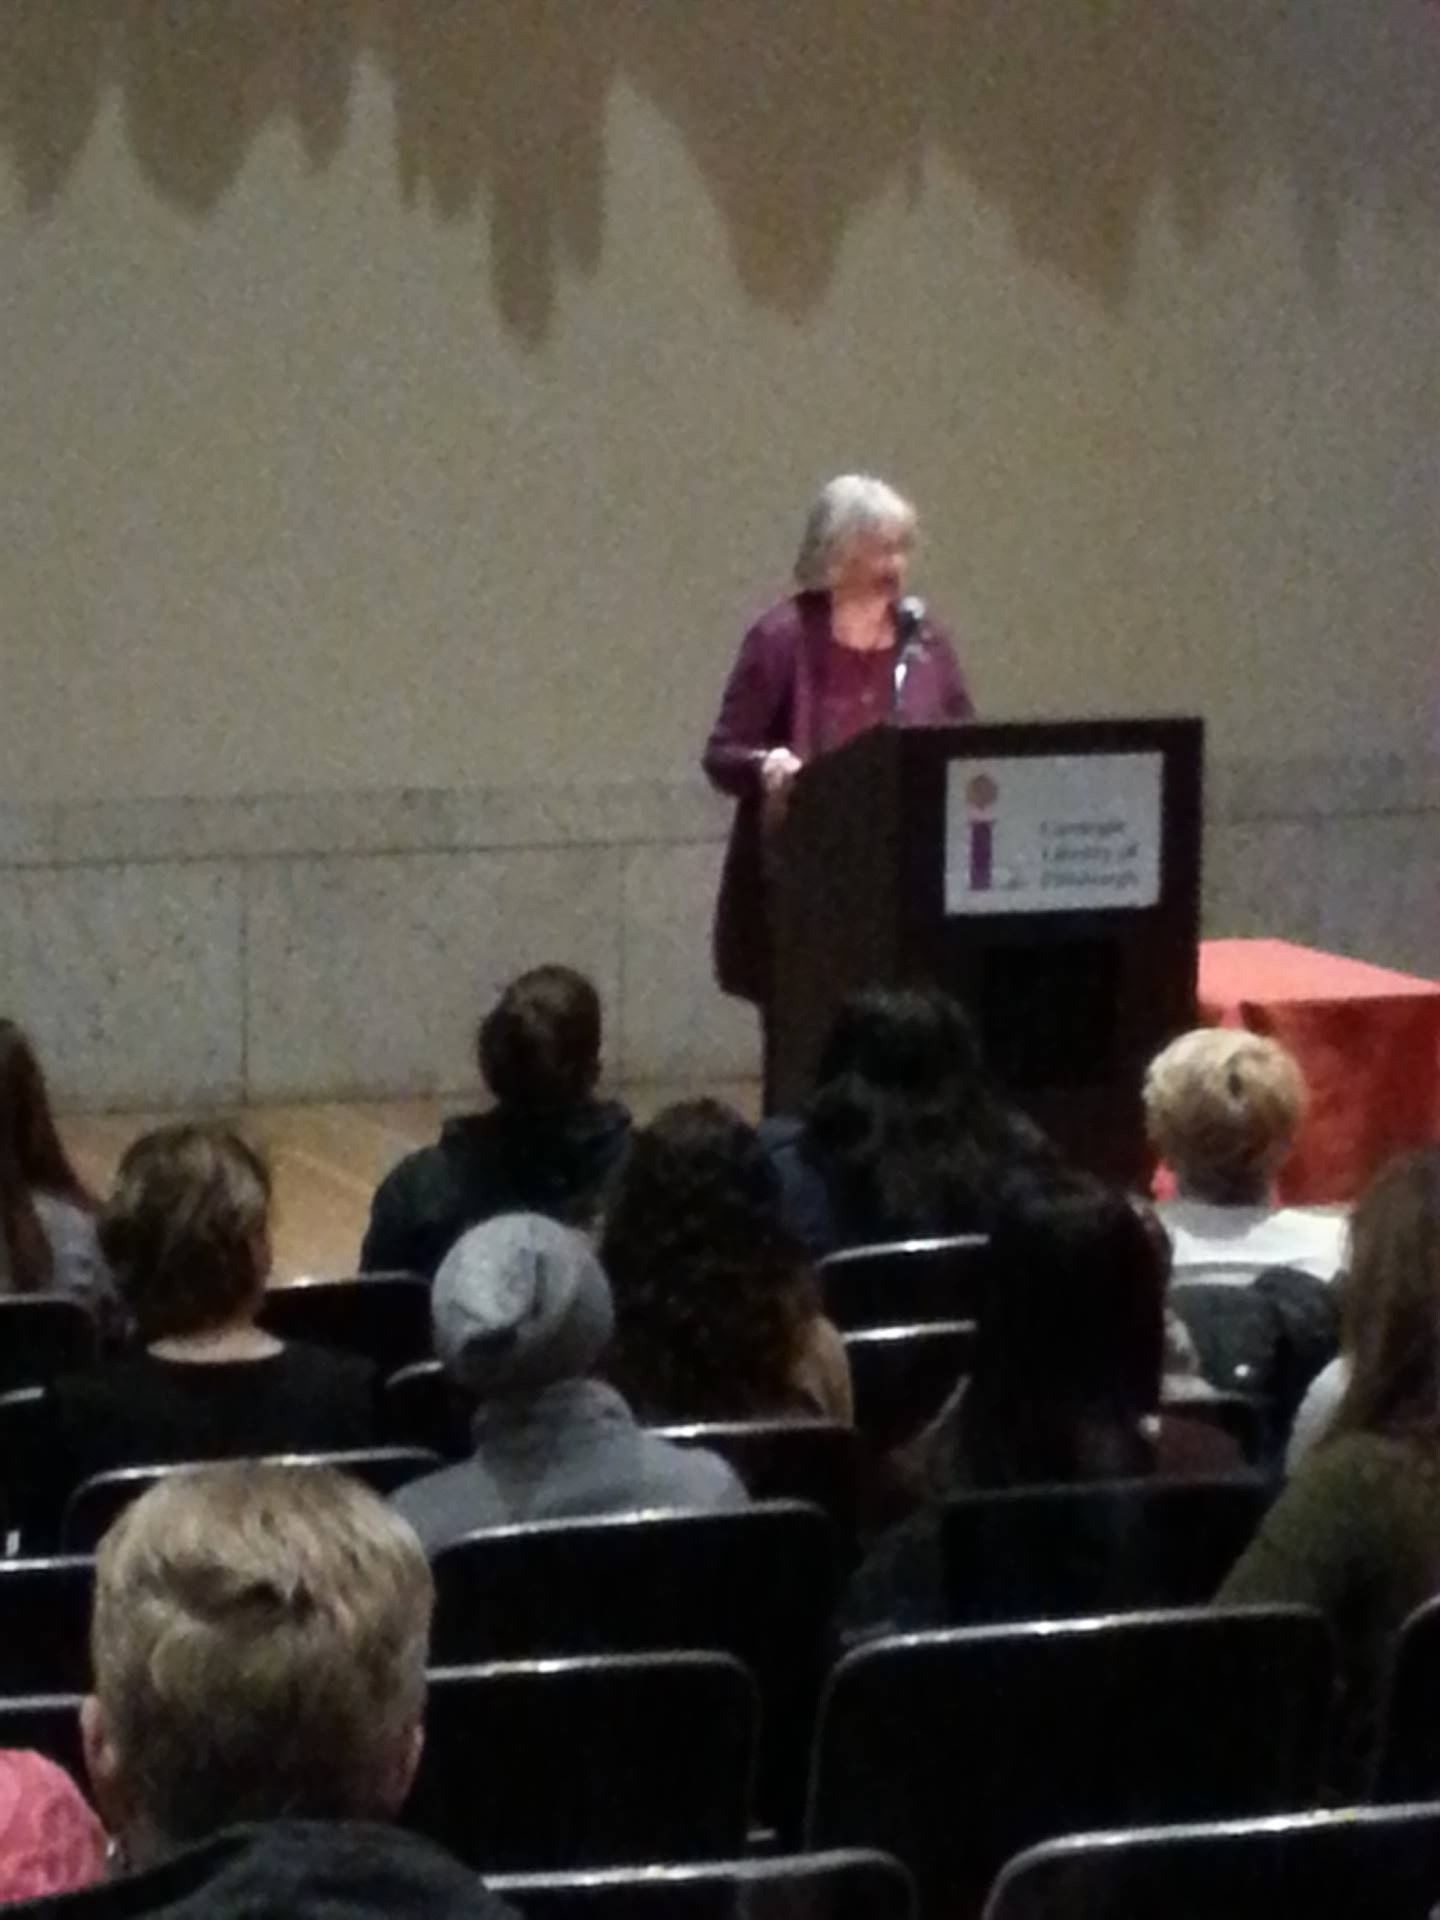 Katherine Paterson speaks at a podium.